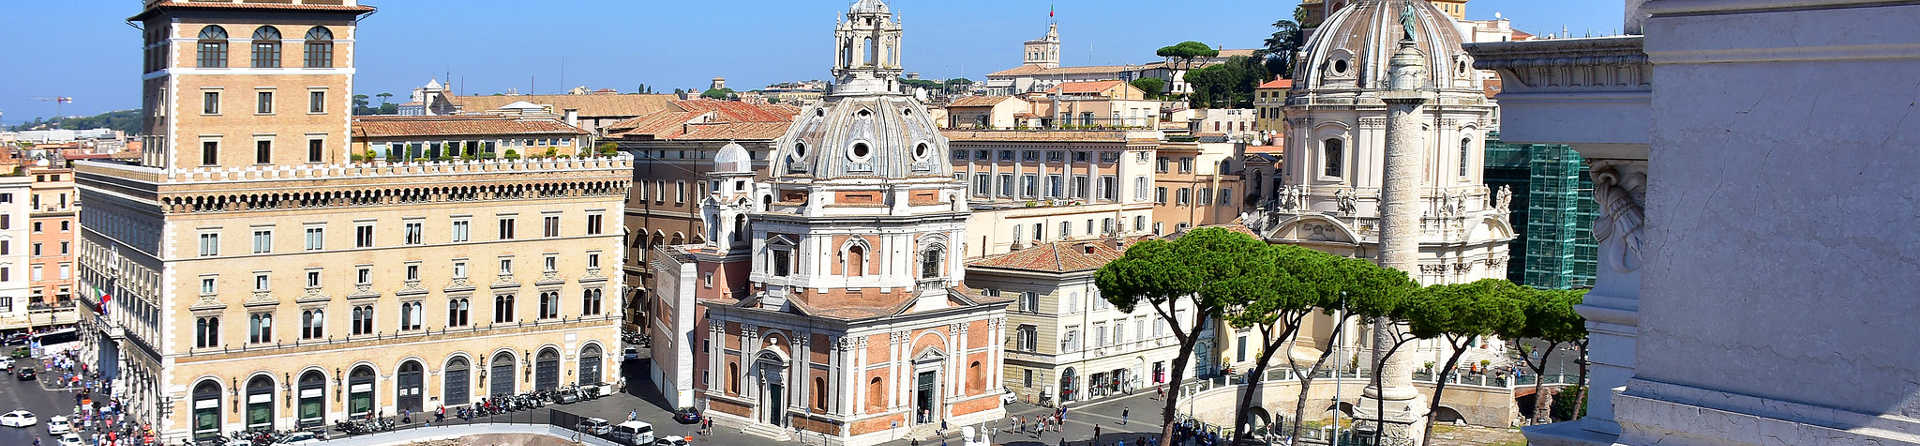 How many days do you need to explore Rome?